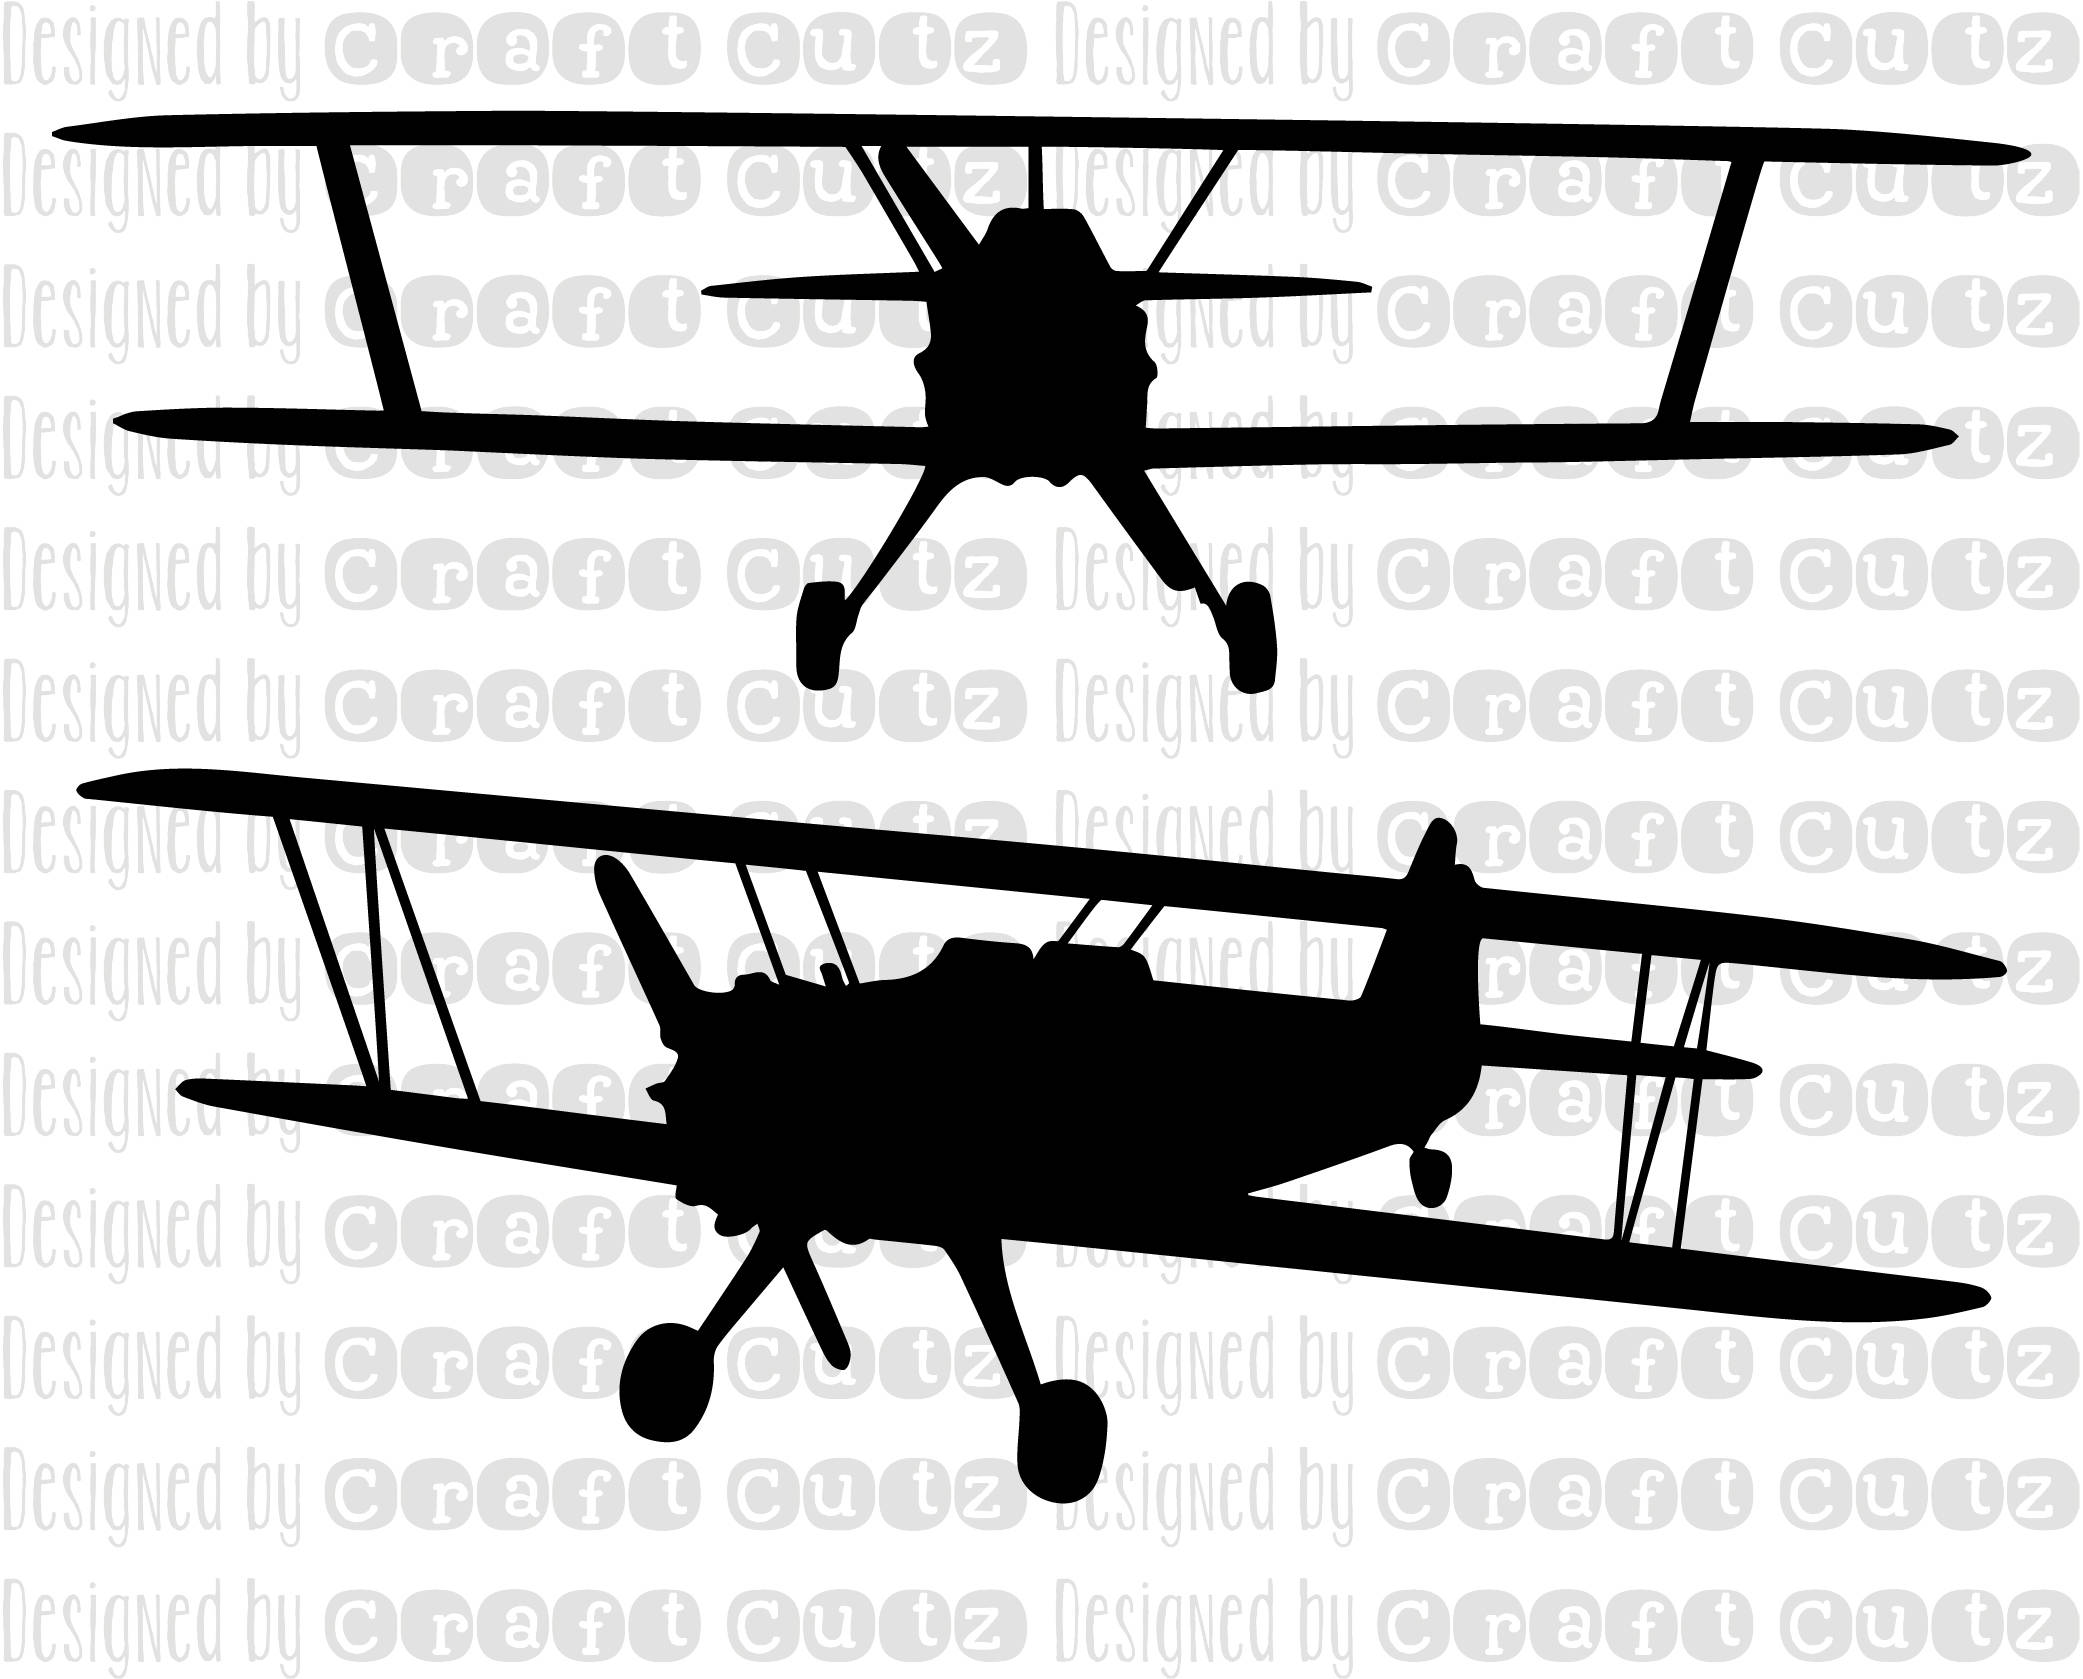 Biplane clipart svg, Biplane svg Transparent FREE for.